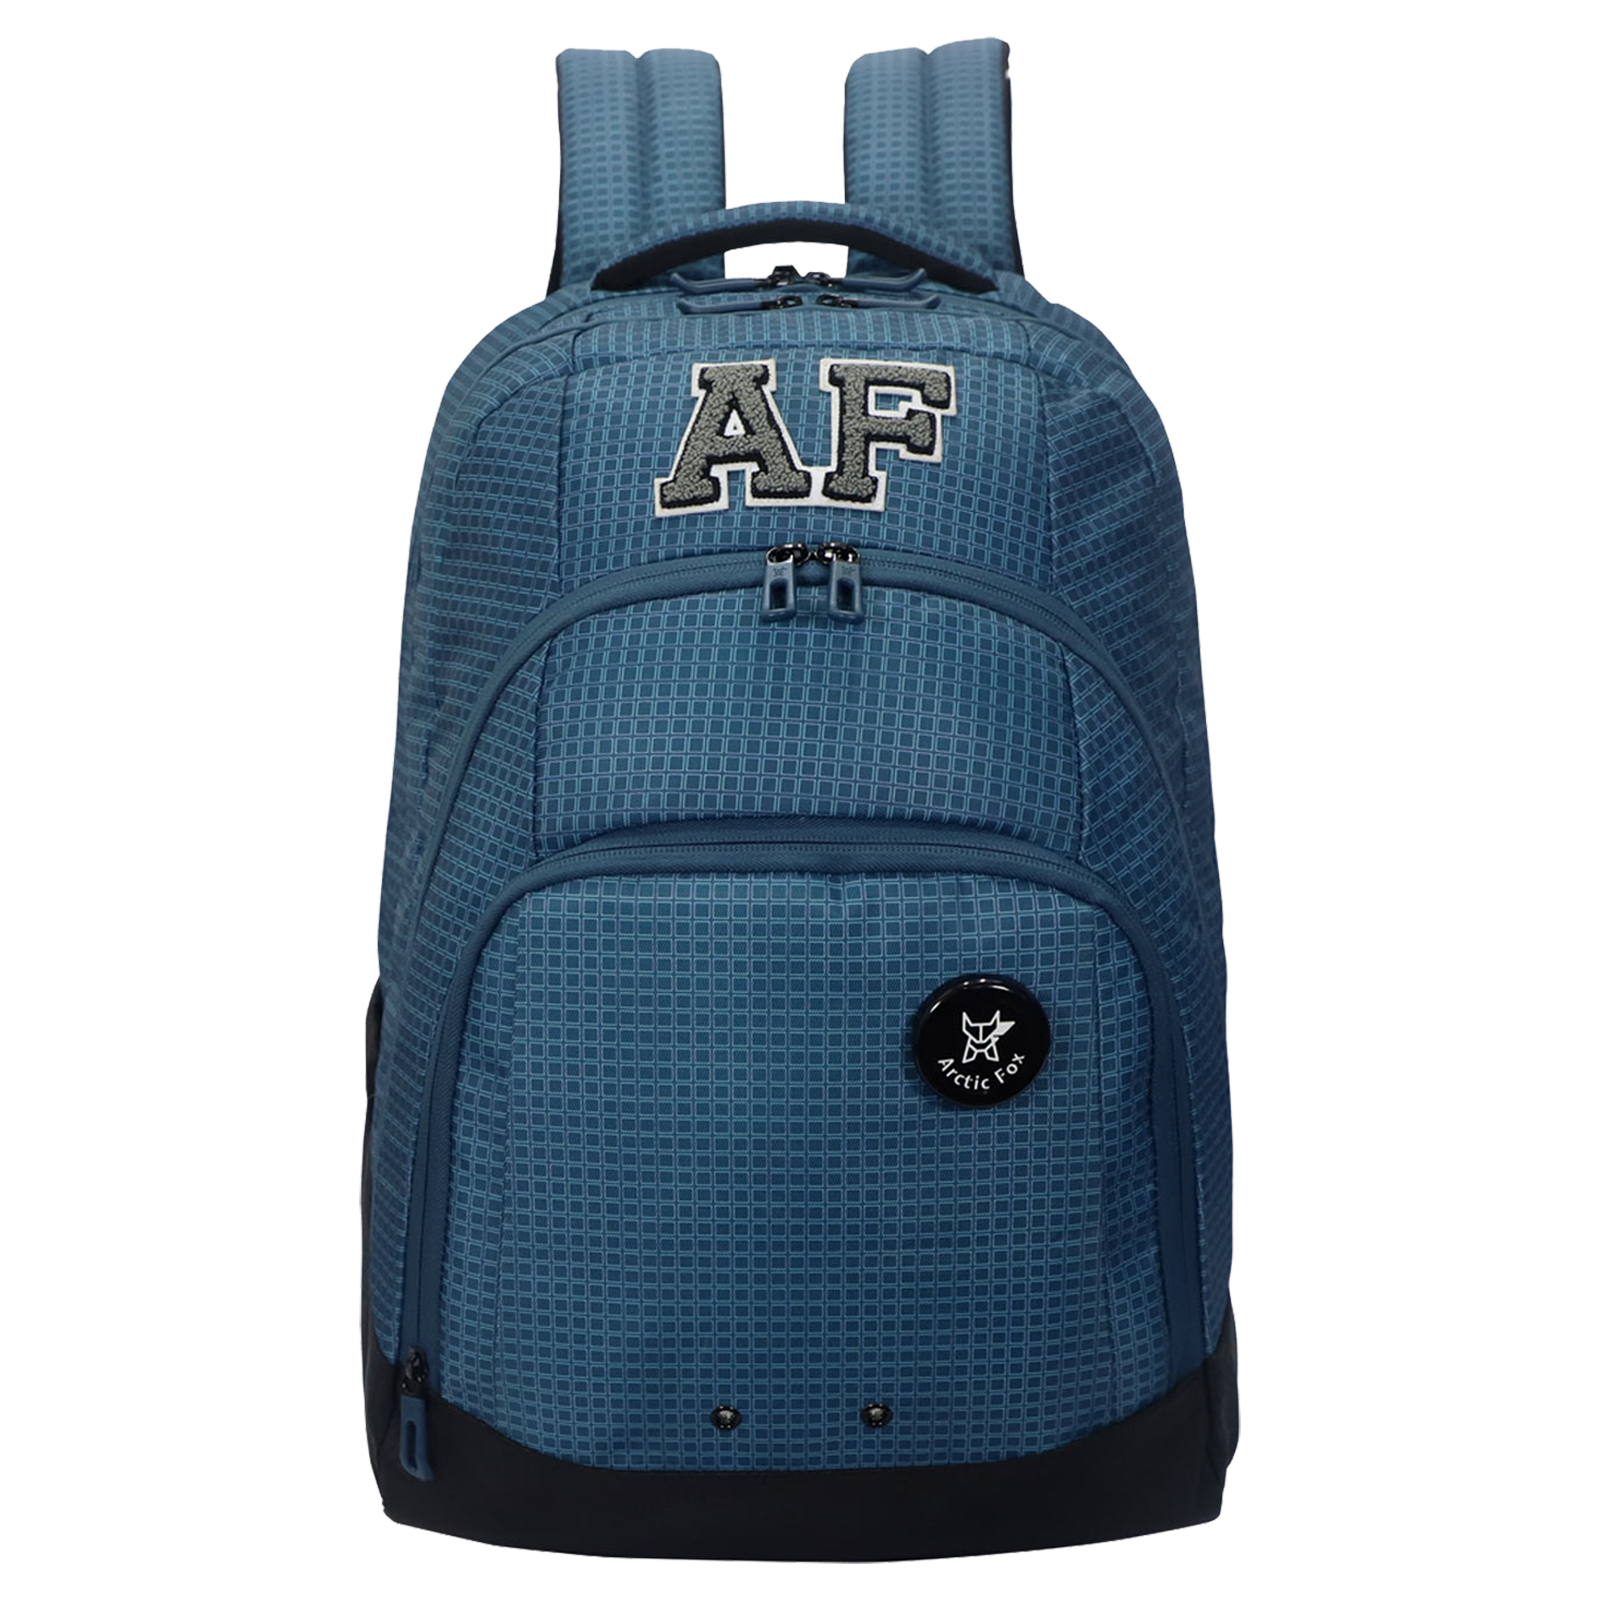 Arctic Fox Stanford 44 Litres PU Coated Polyester Backpack (3 Spacious Compartments, FTEBPKDDVWZ085044, Deep Dive)_1